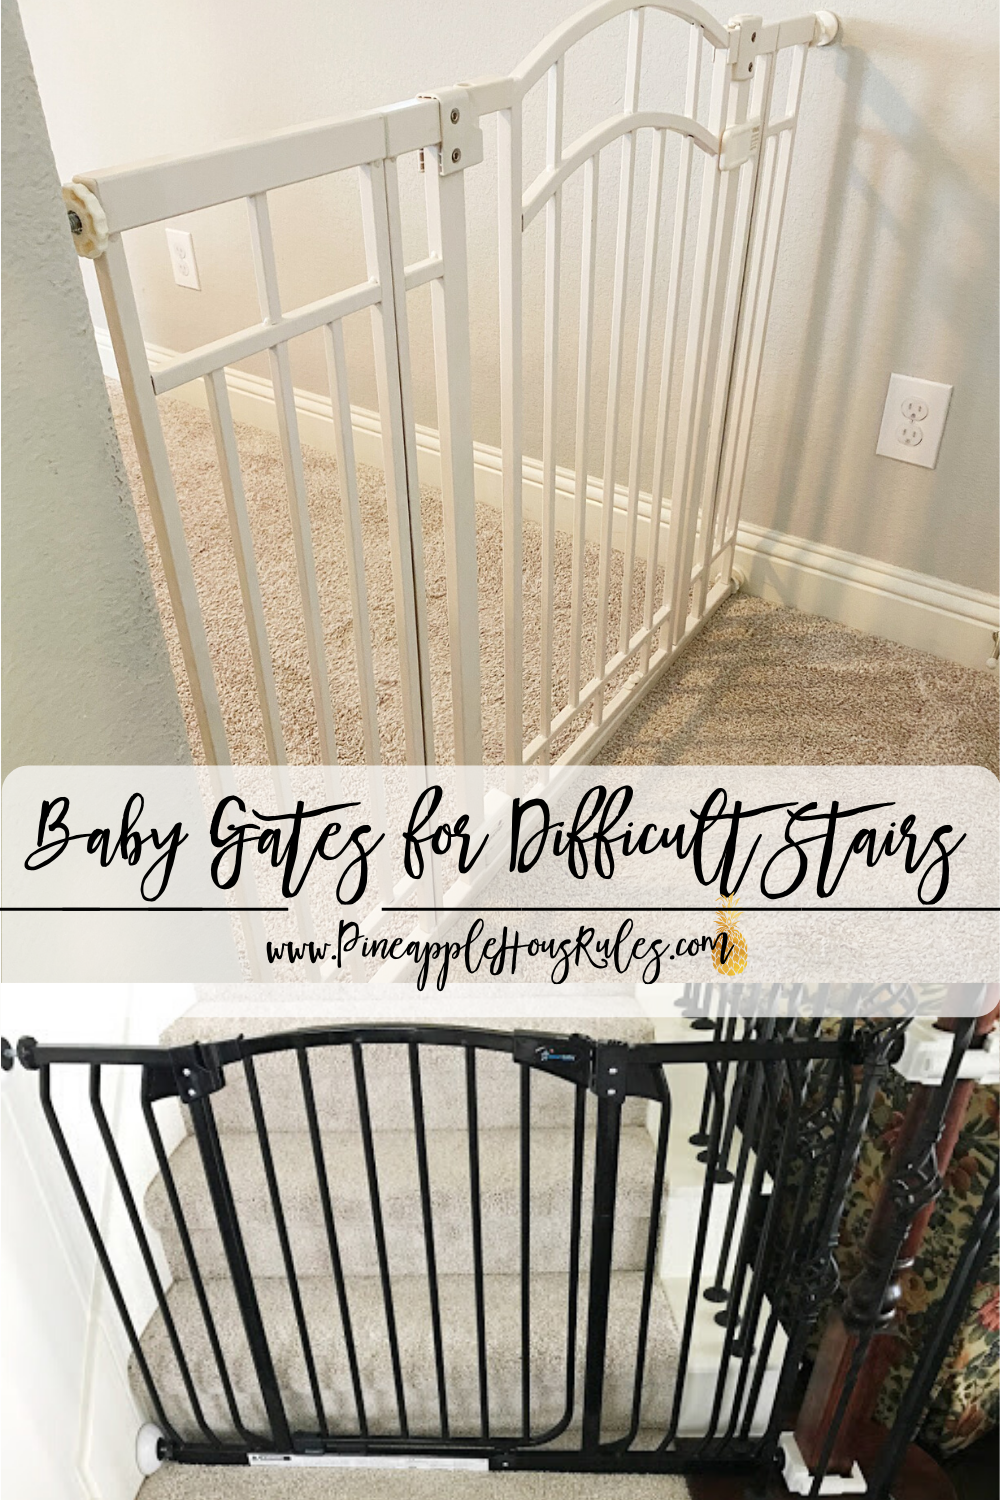 Baby Gates For Difficult Stairs Baby Gate For Stairs Baby Gates Best Baby Gates